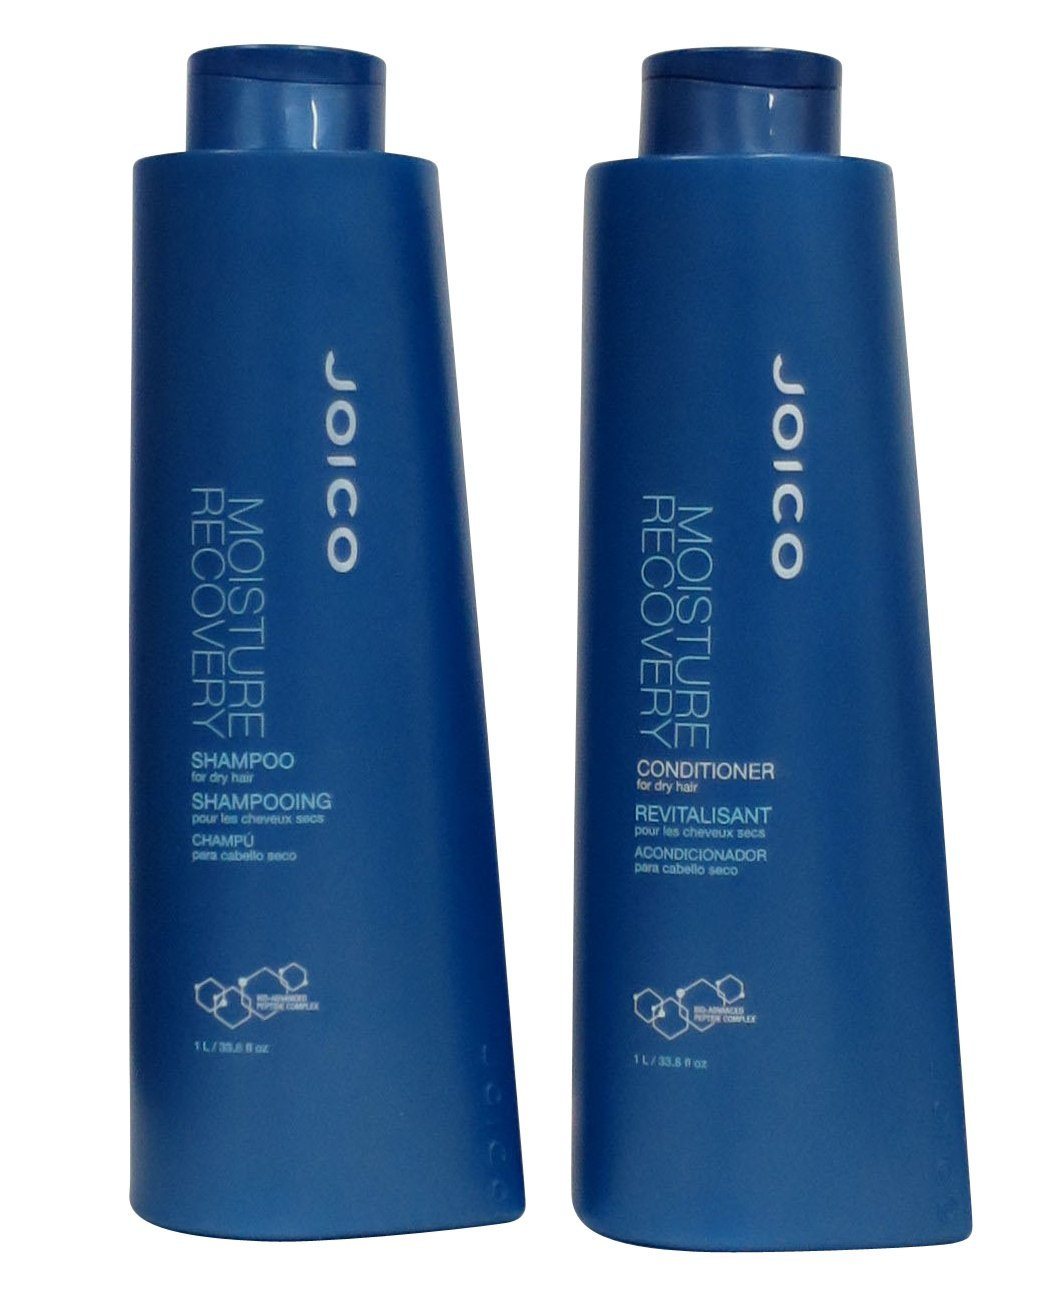 Joico - Moisture Recovery Shampoo and Conditioner Liter Duo Set(33.8oz) by Joico